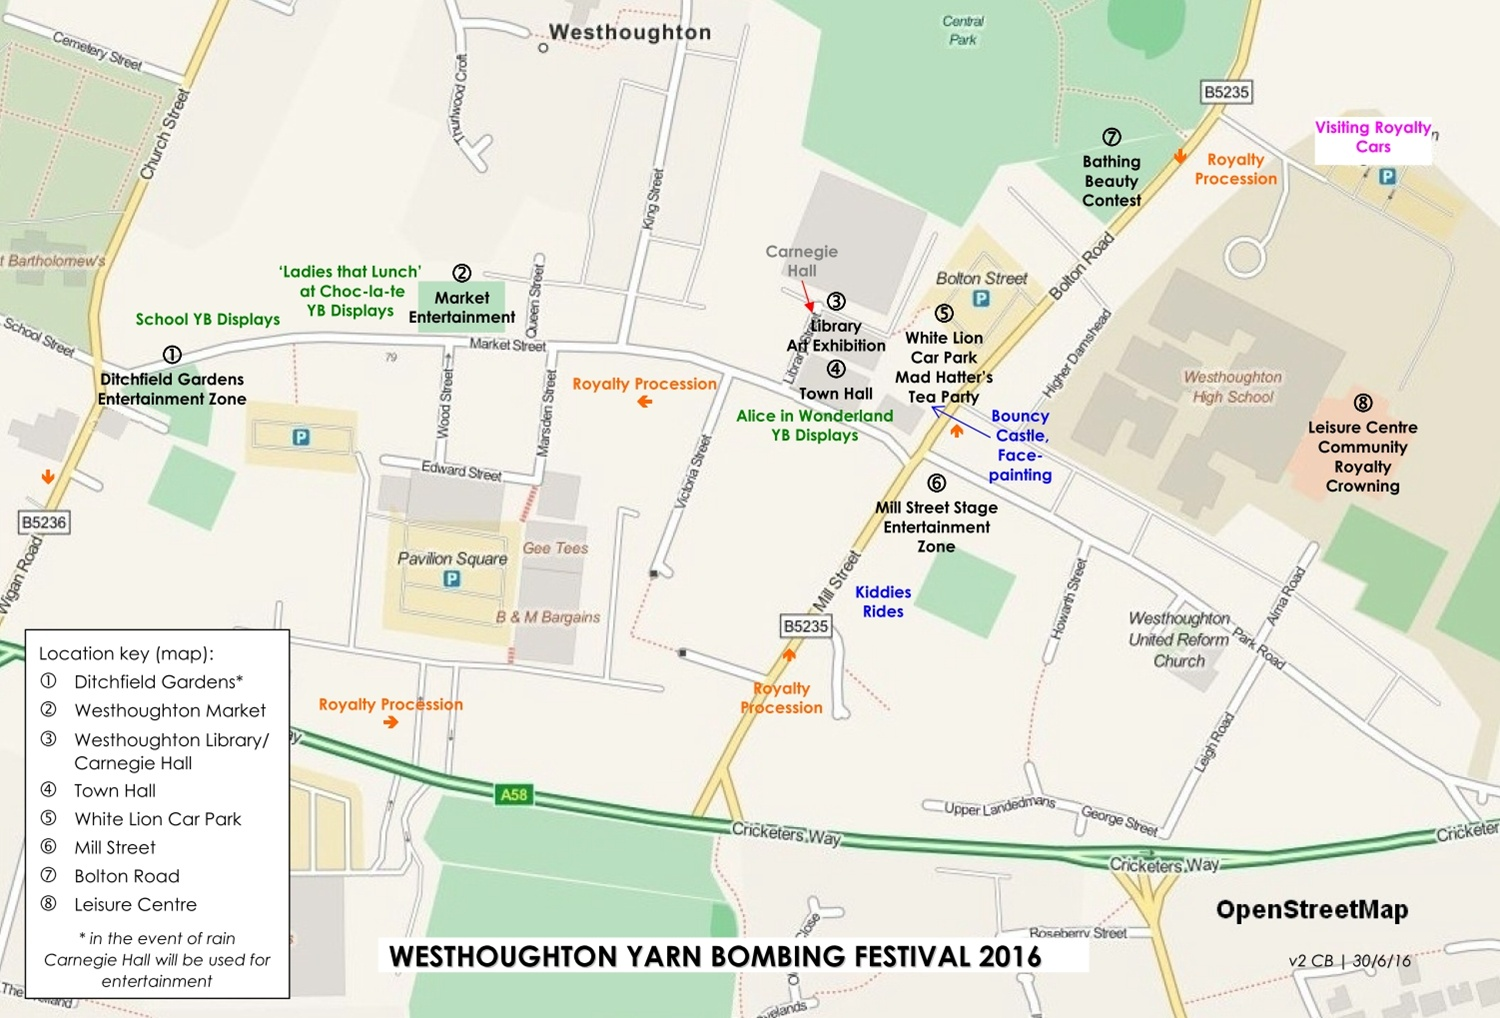 Westhoughton Yarn Bombing Festival 2nd / 3rd July 2016 - Locations